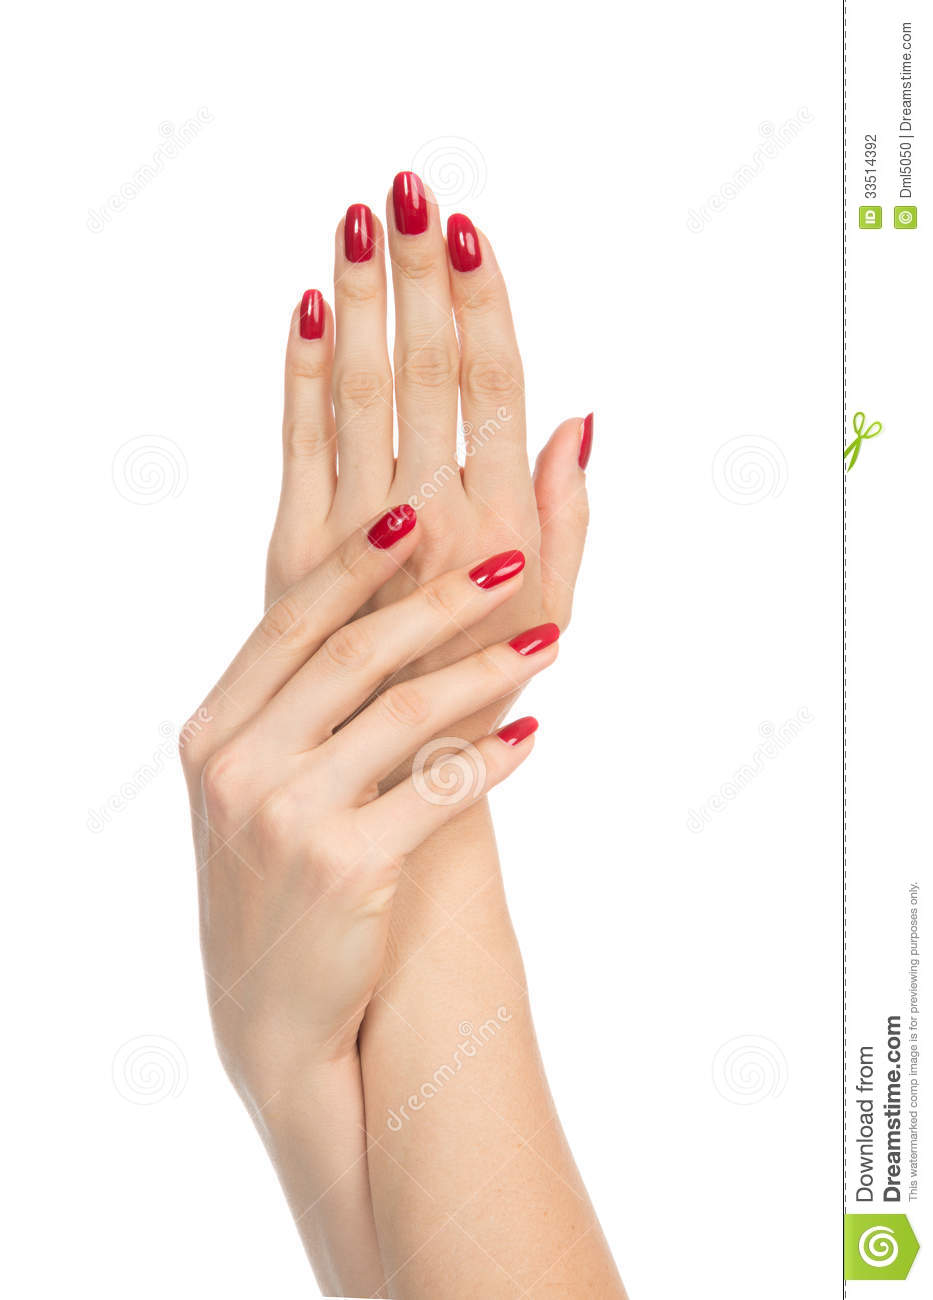 Woman Hands With Manicured Red Nails Stock Photo